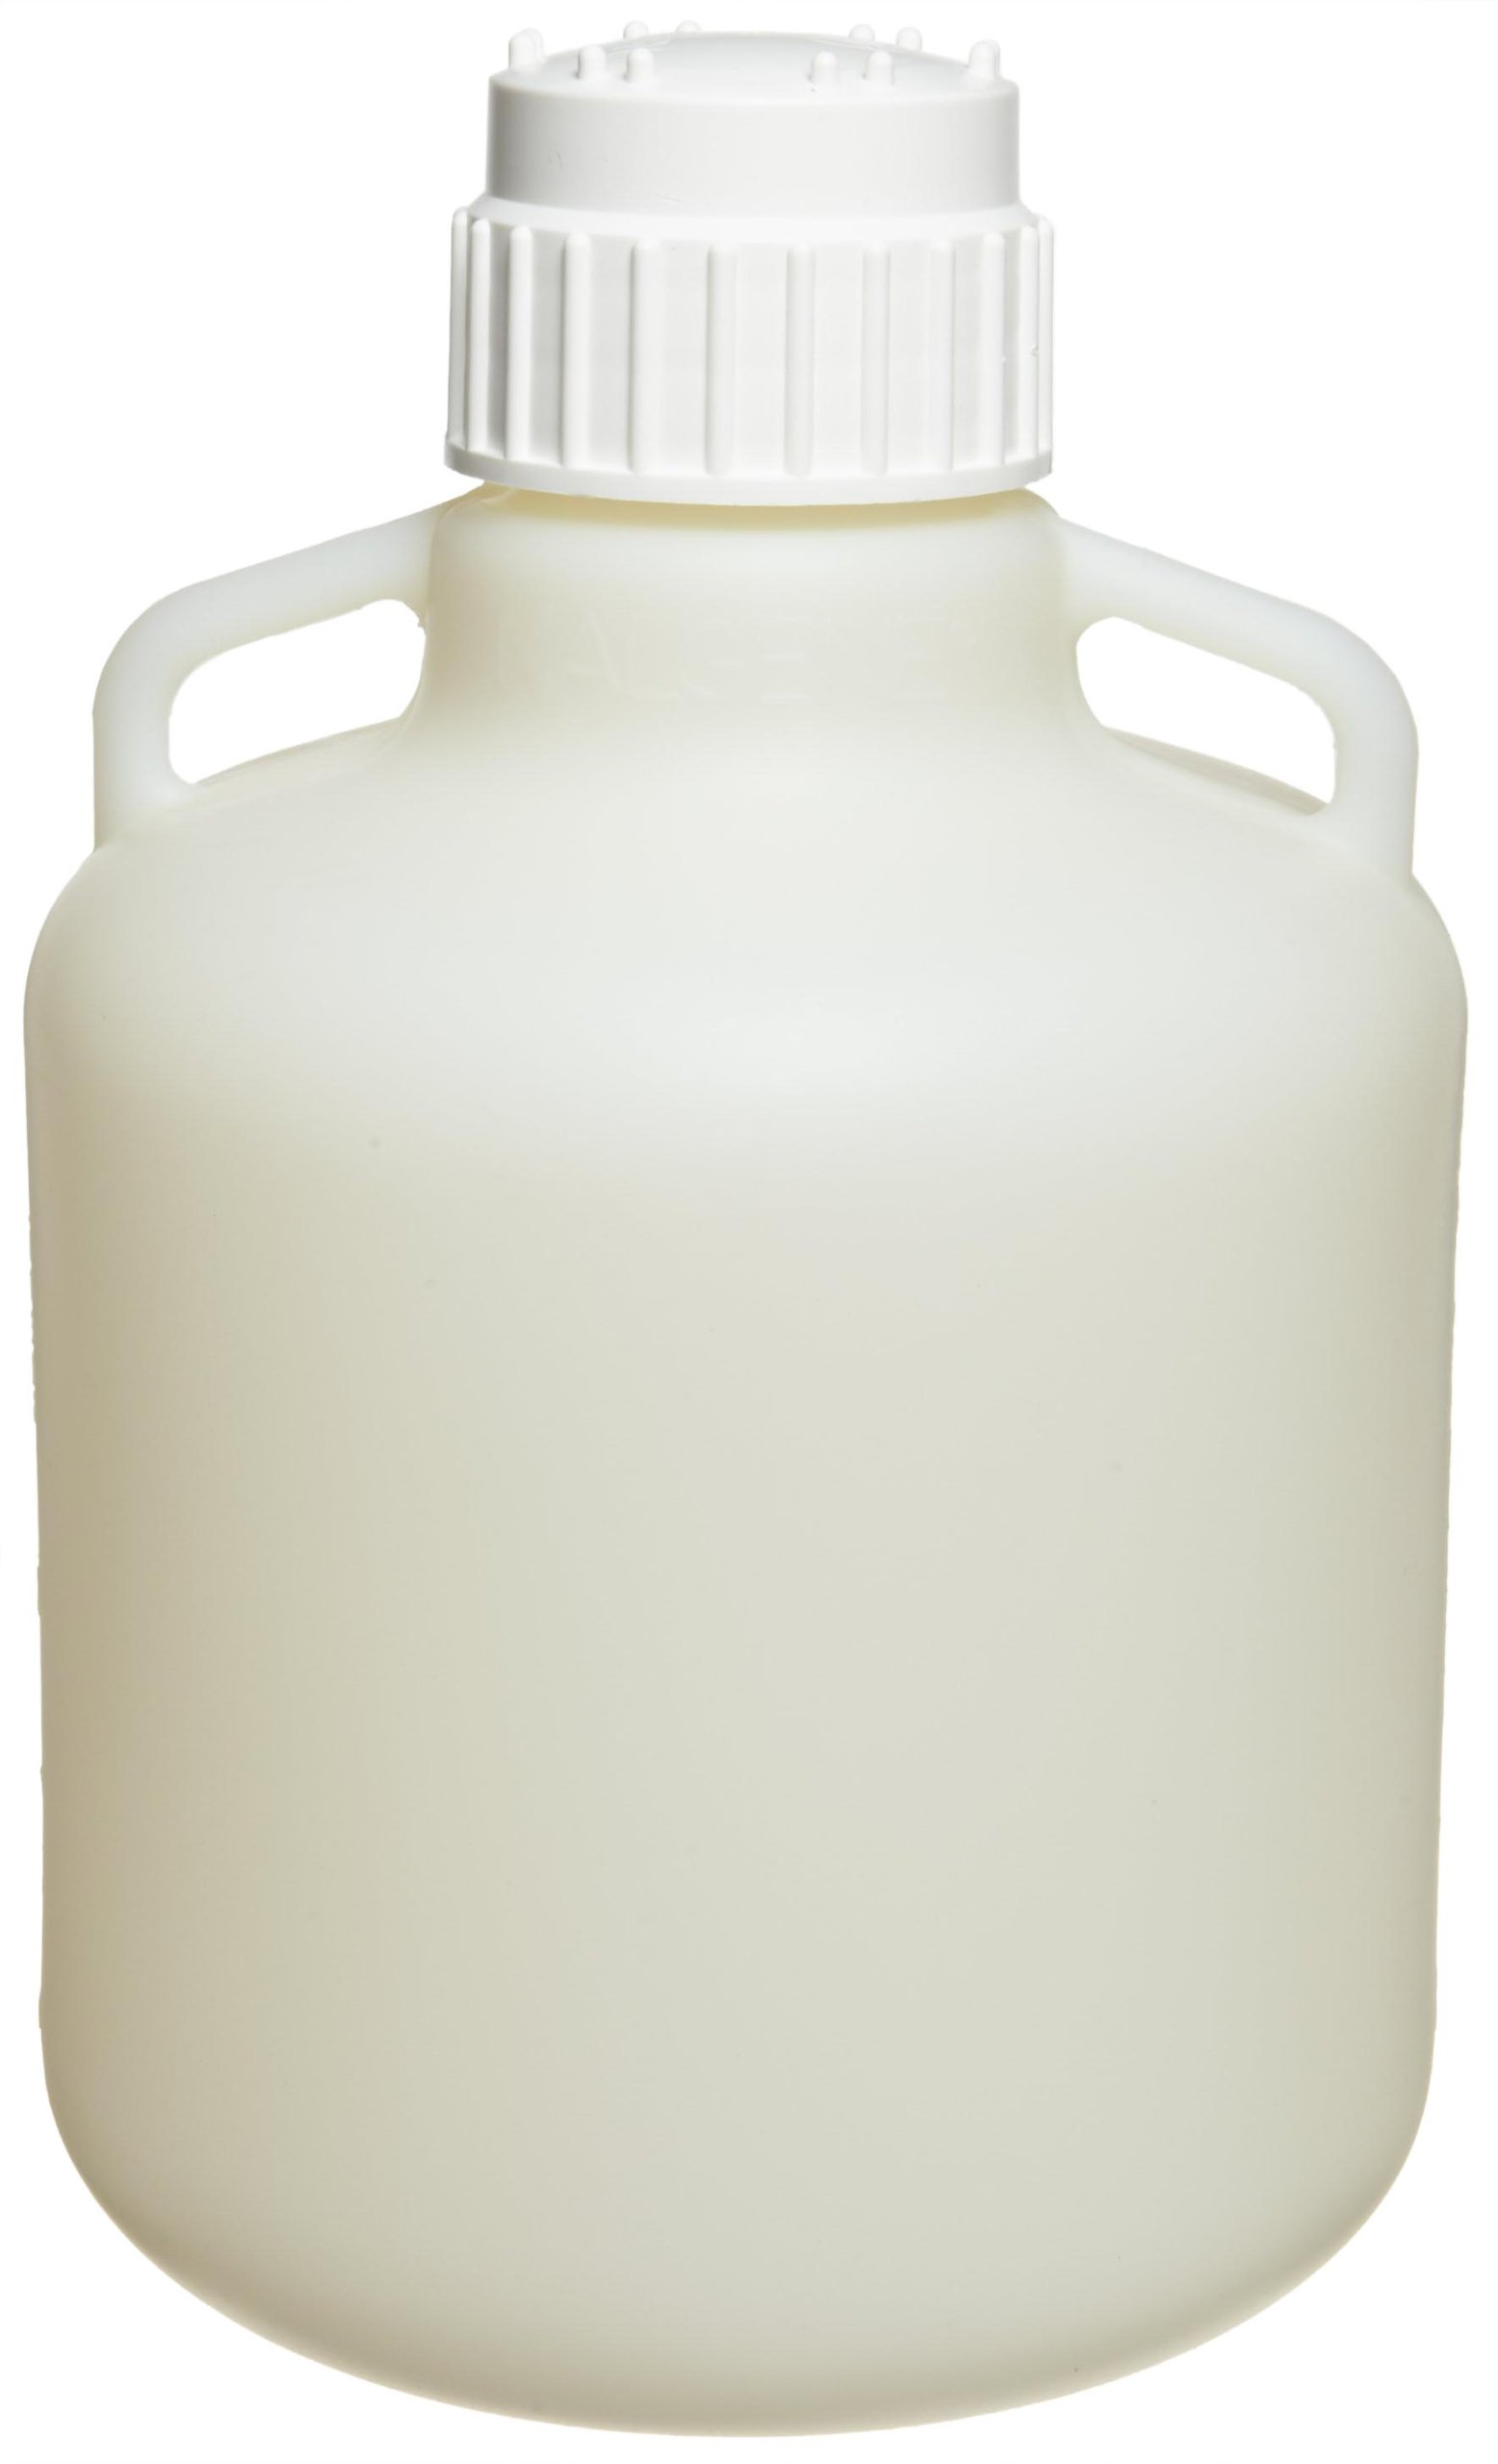 Nalgene 2097-0020 Fluorinated HDPE Carboy with Handle and Polypropylene Screw Closure, 10L Capacity